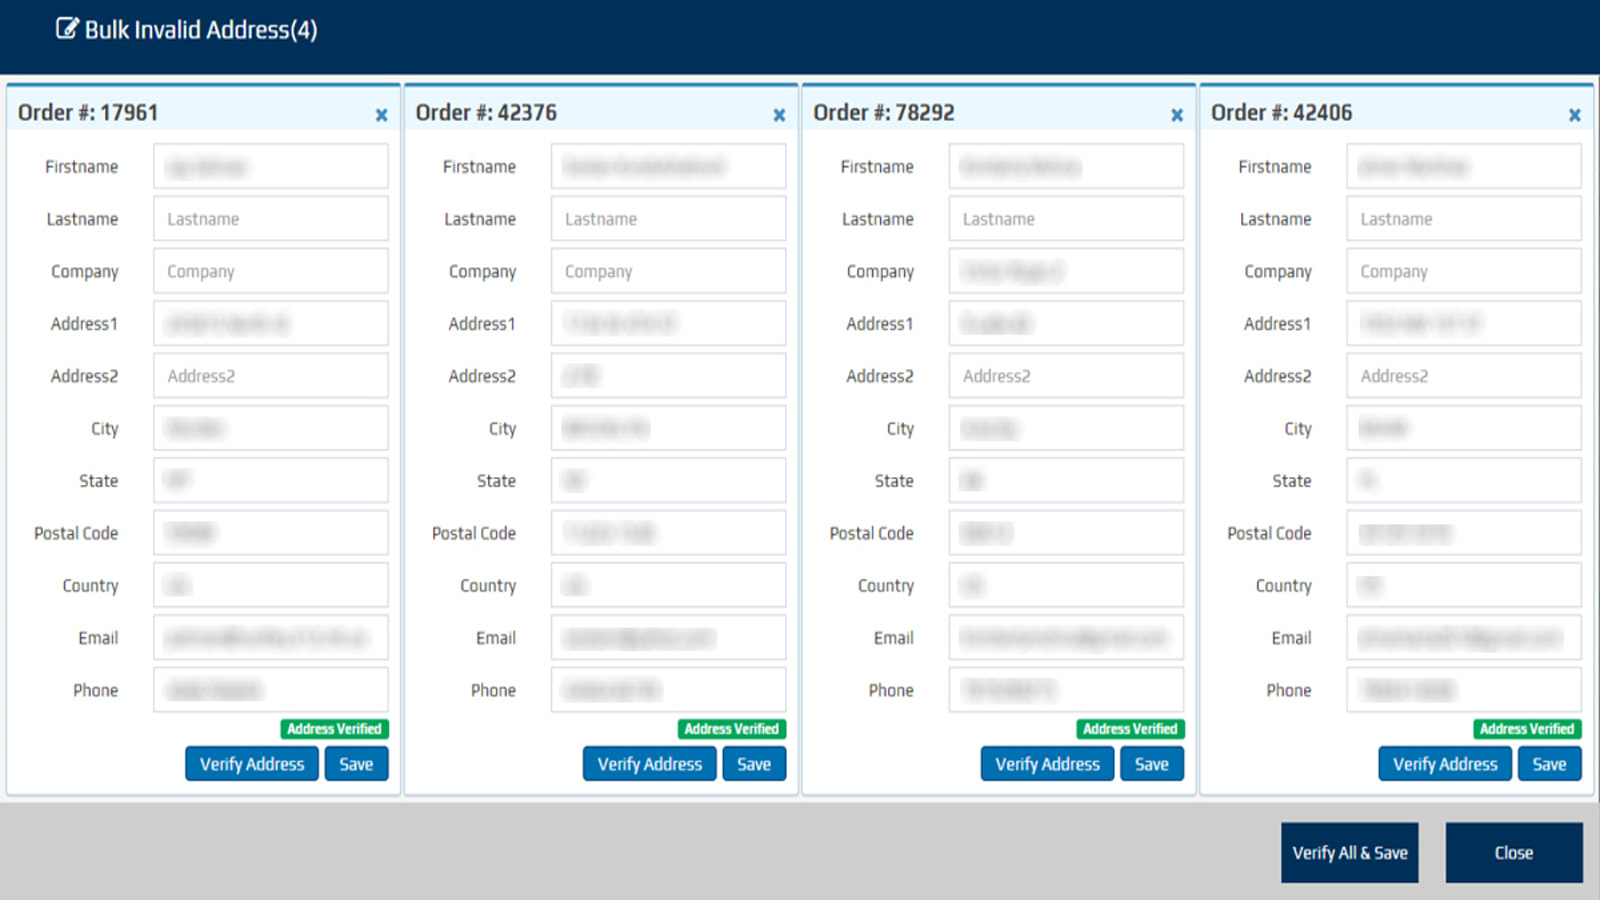 validate all your addresses in one page by one click